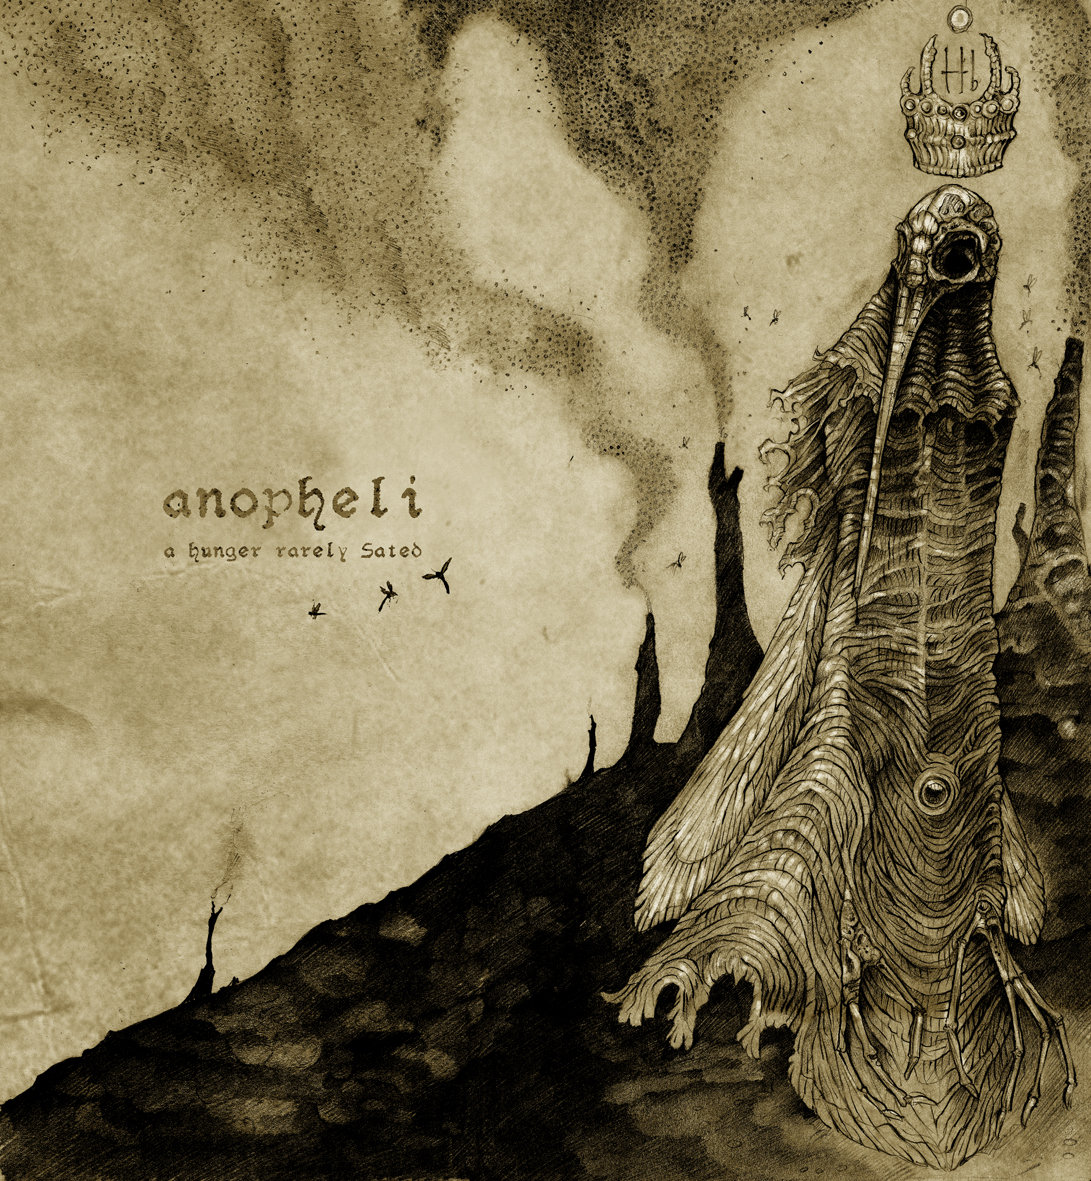 Anopheli - Part 1 @ 'A Hunger Rarely Sated' album (metal, oakland)